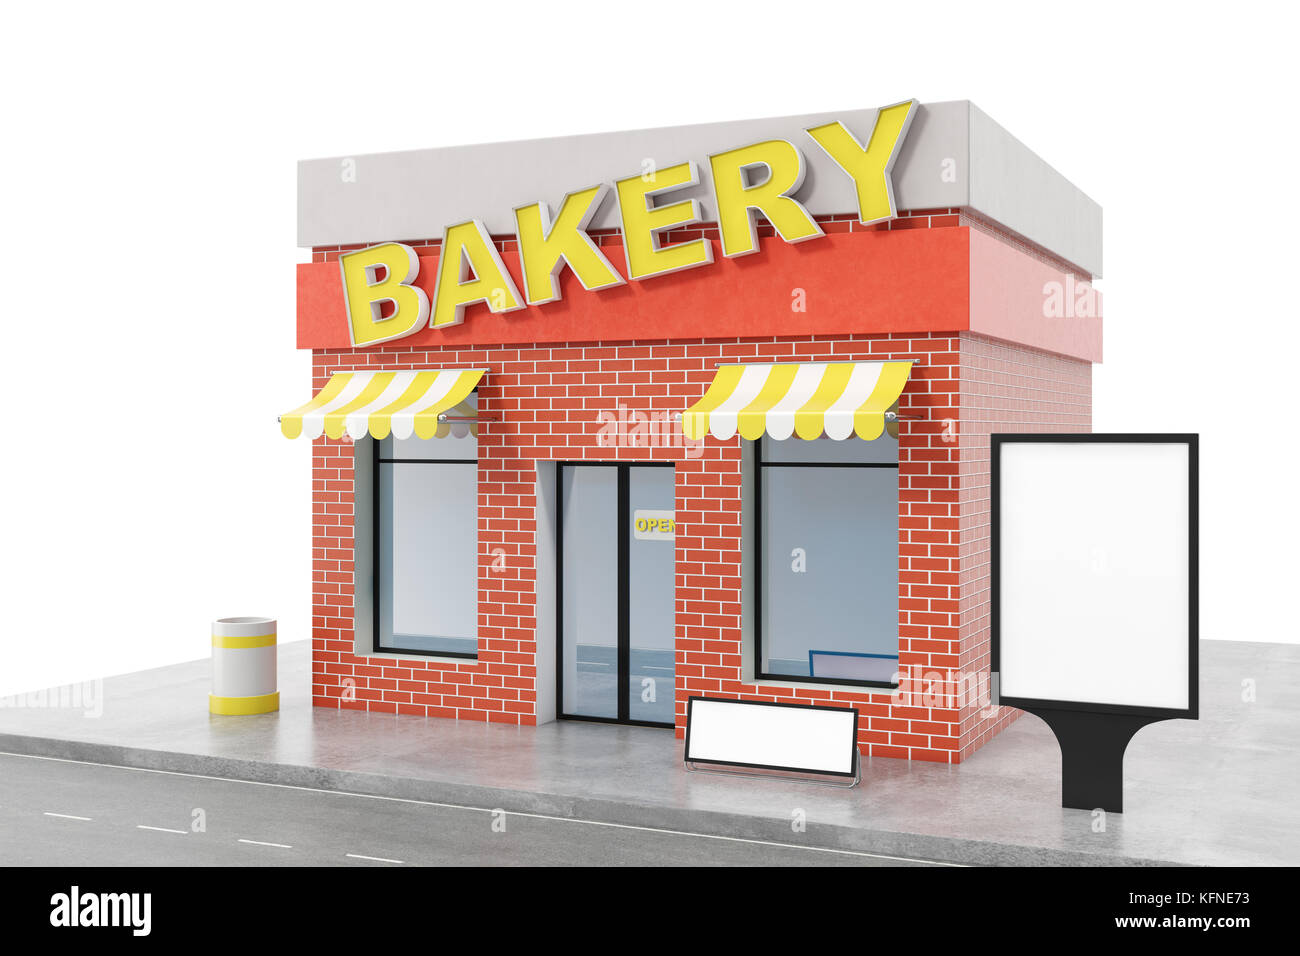 cake shop front stock photos cake shop front stock images alamy. Black Bedroom Furniture Sets. Home Design Ideas